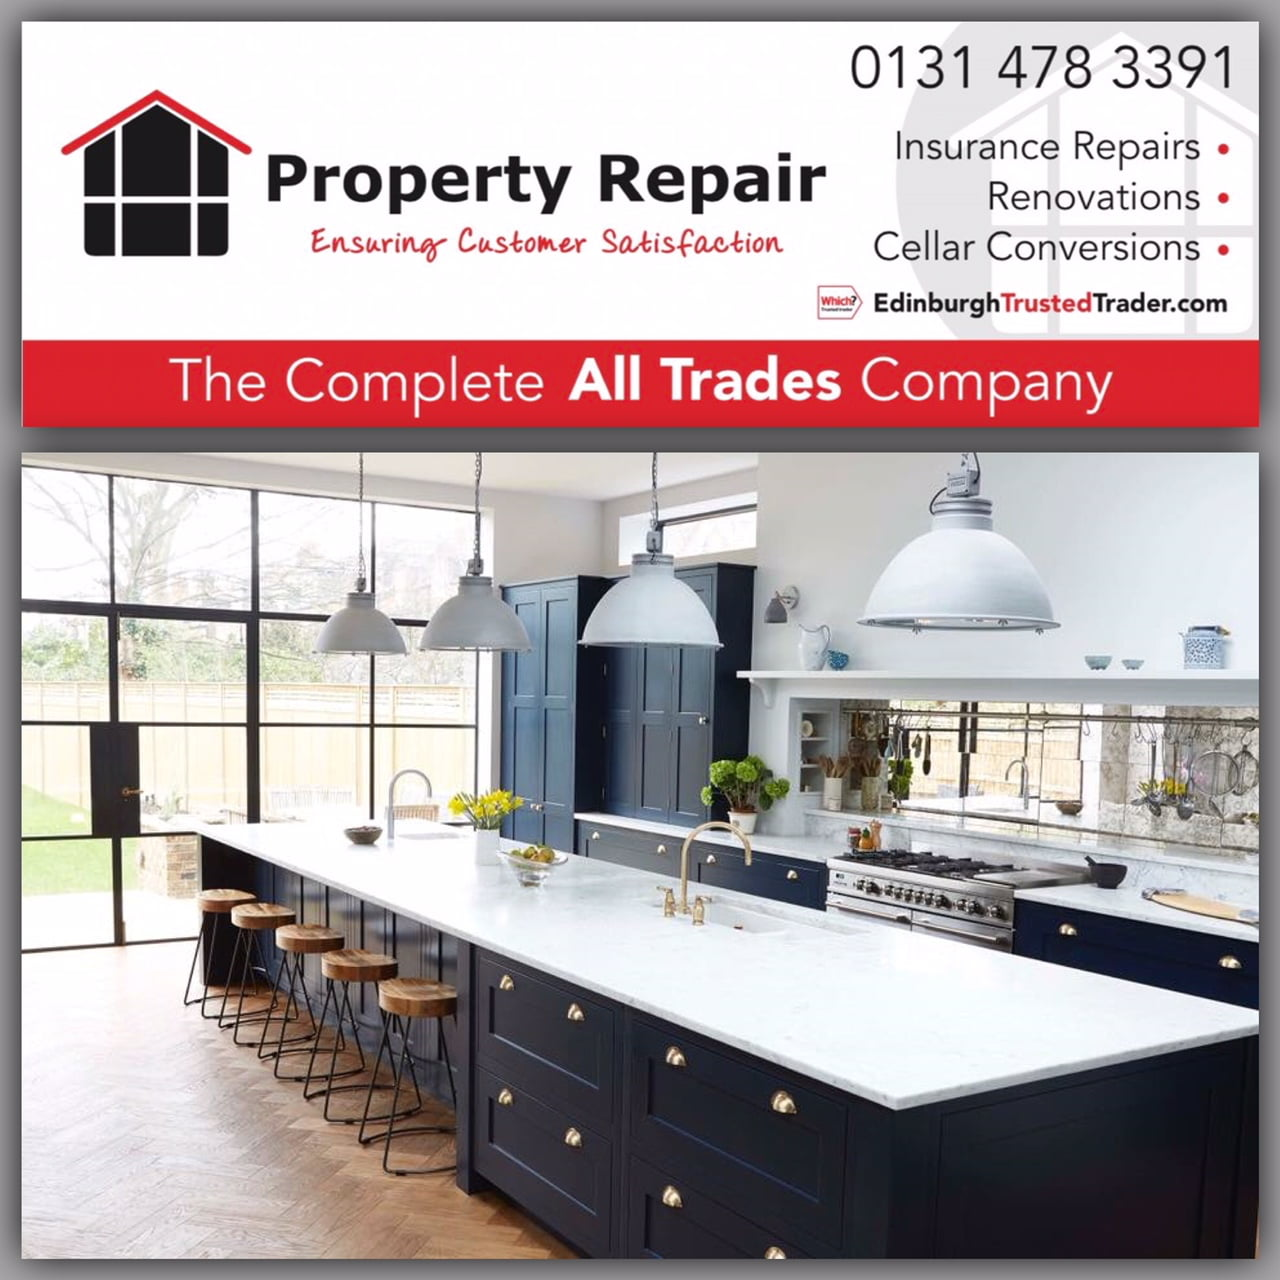 Free Kitchen Design Edinburgh Property Repair Kitchen Renovations In Edinburgh